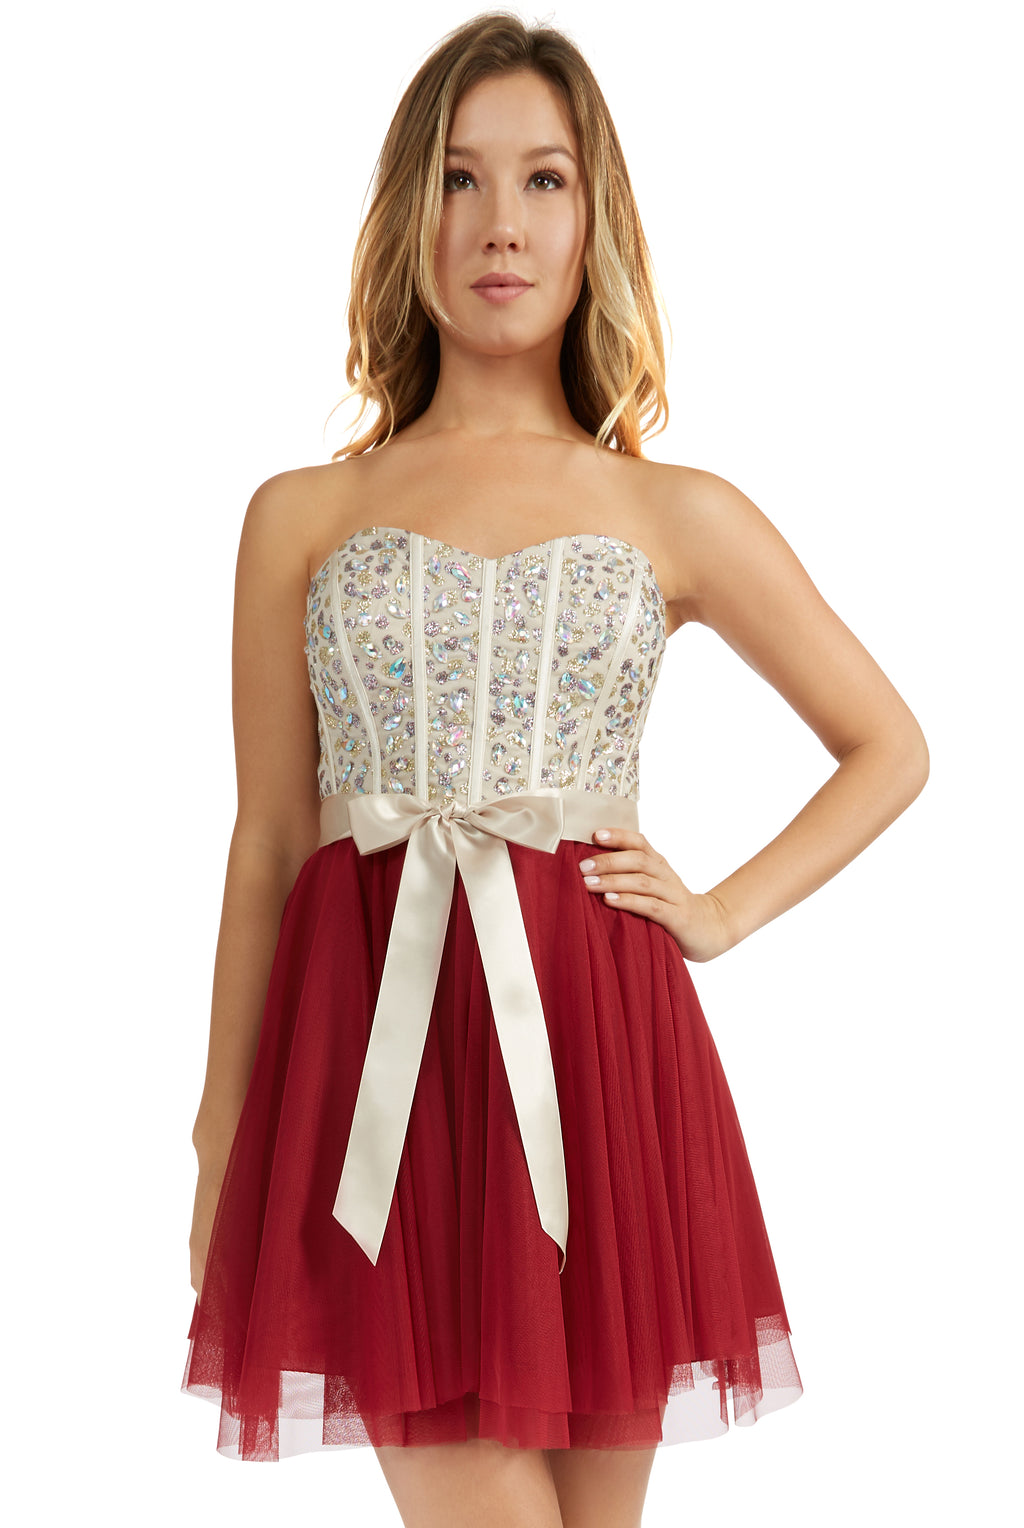 Teeze Me | Queen Colleen Strapless Corset Jewel Beaded Full Tulle Skirt Party Dress | Champagne/Burgundy - Teeze Me